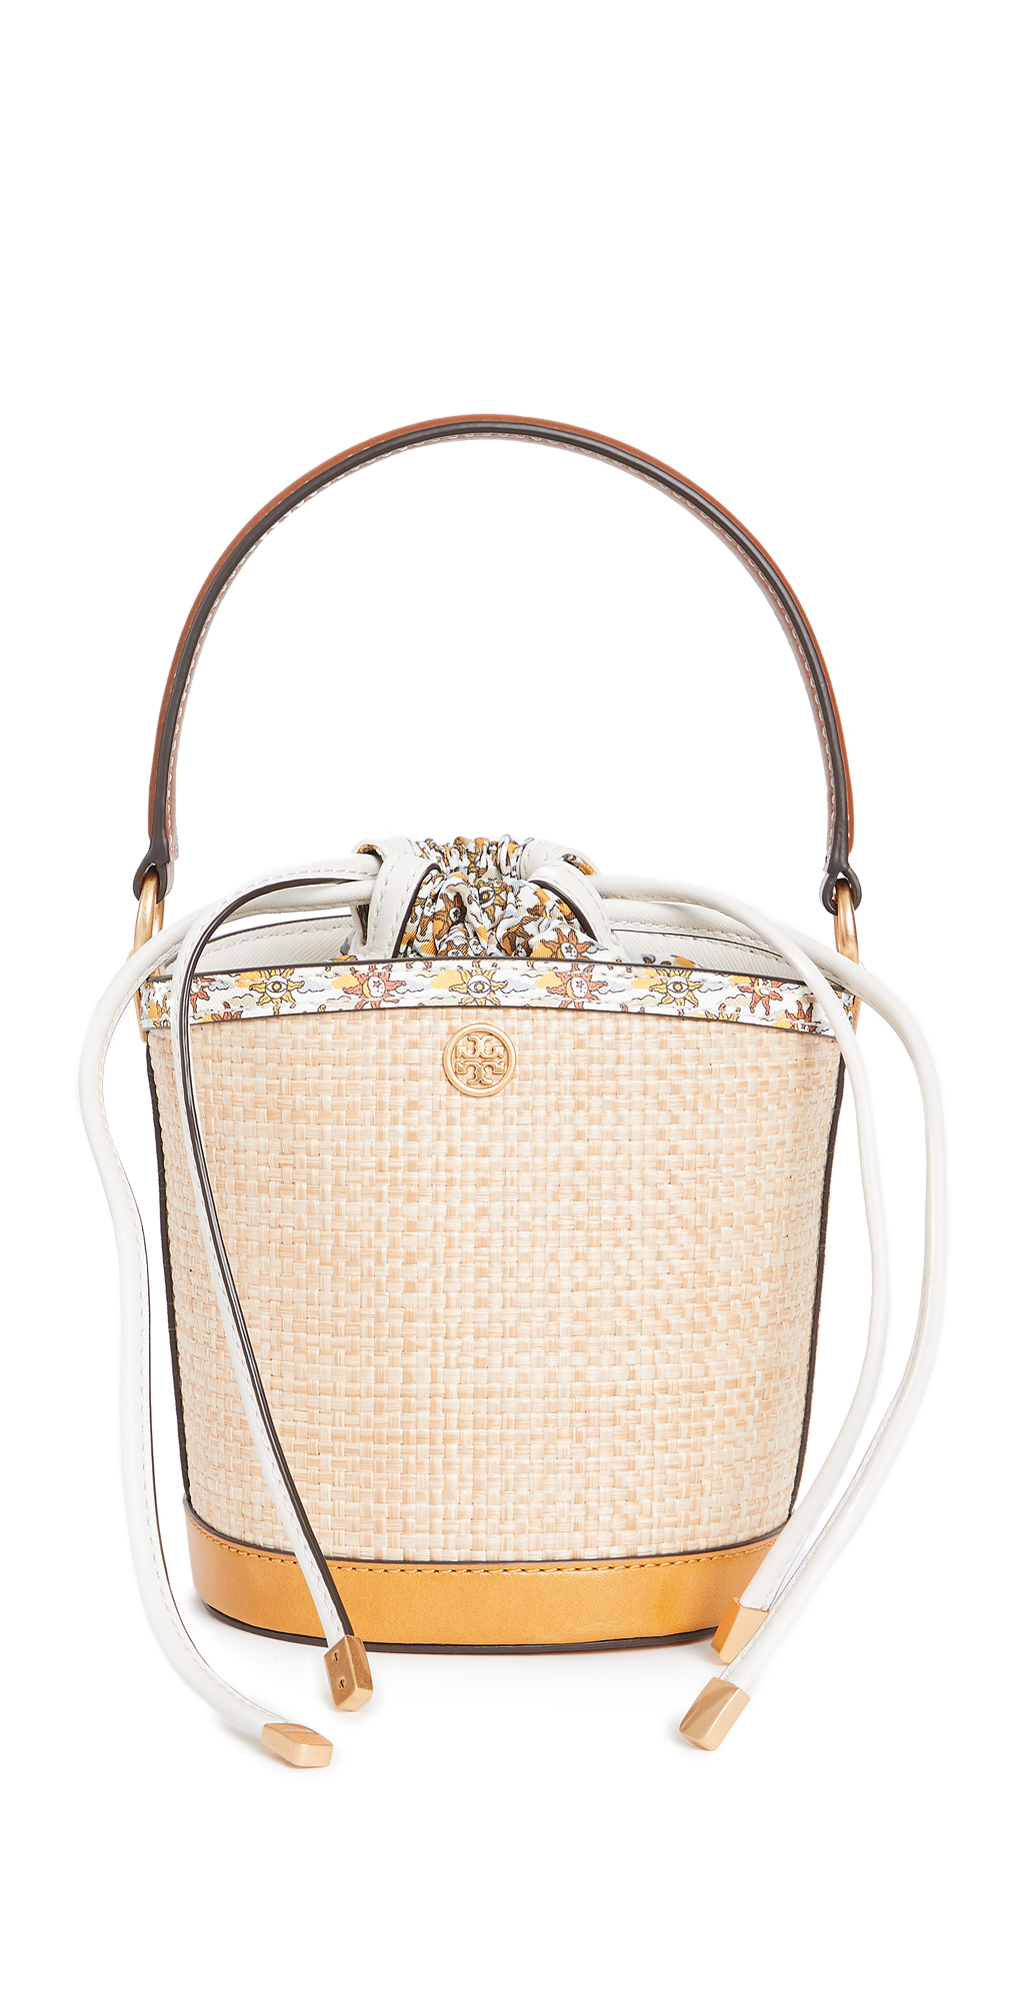 Tory Burch Robinson Straw Mini Bucket Bag